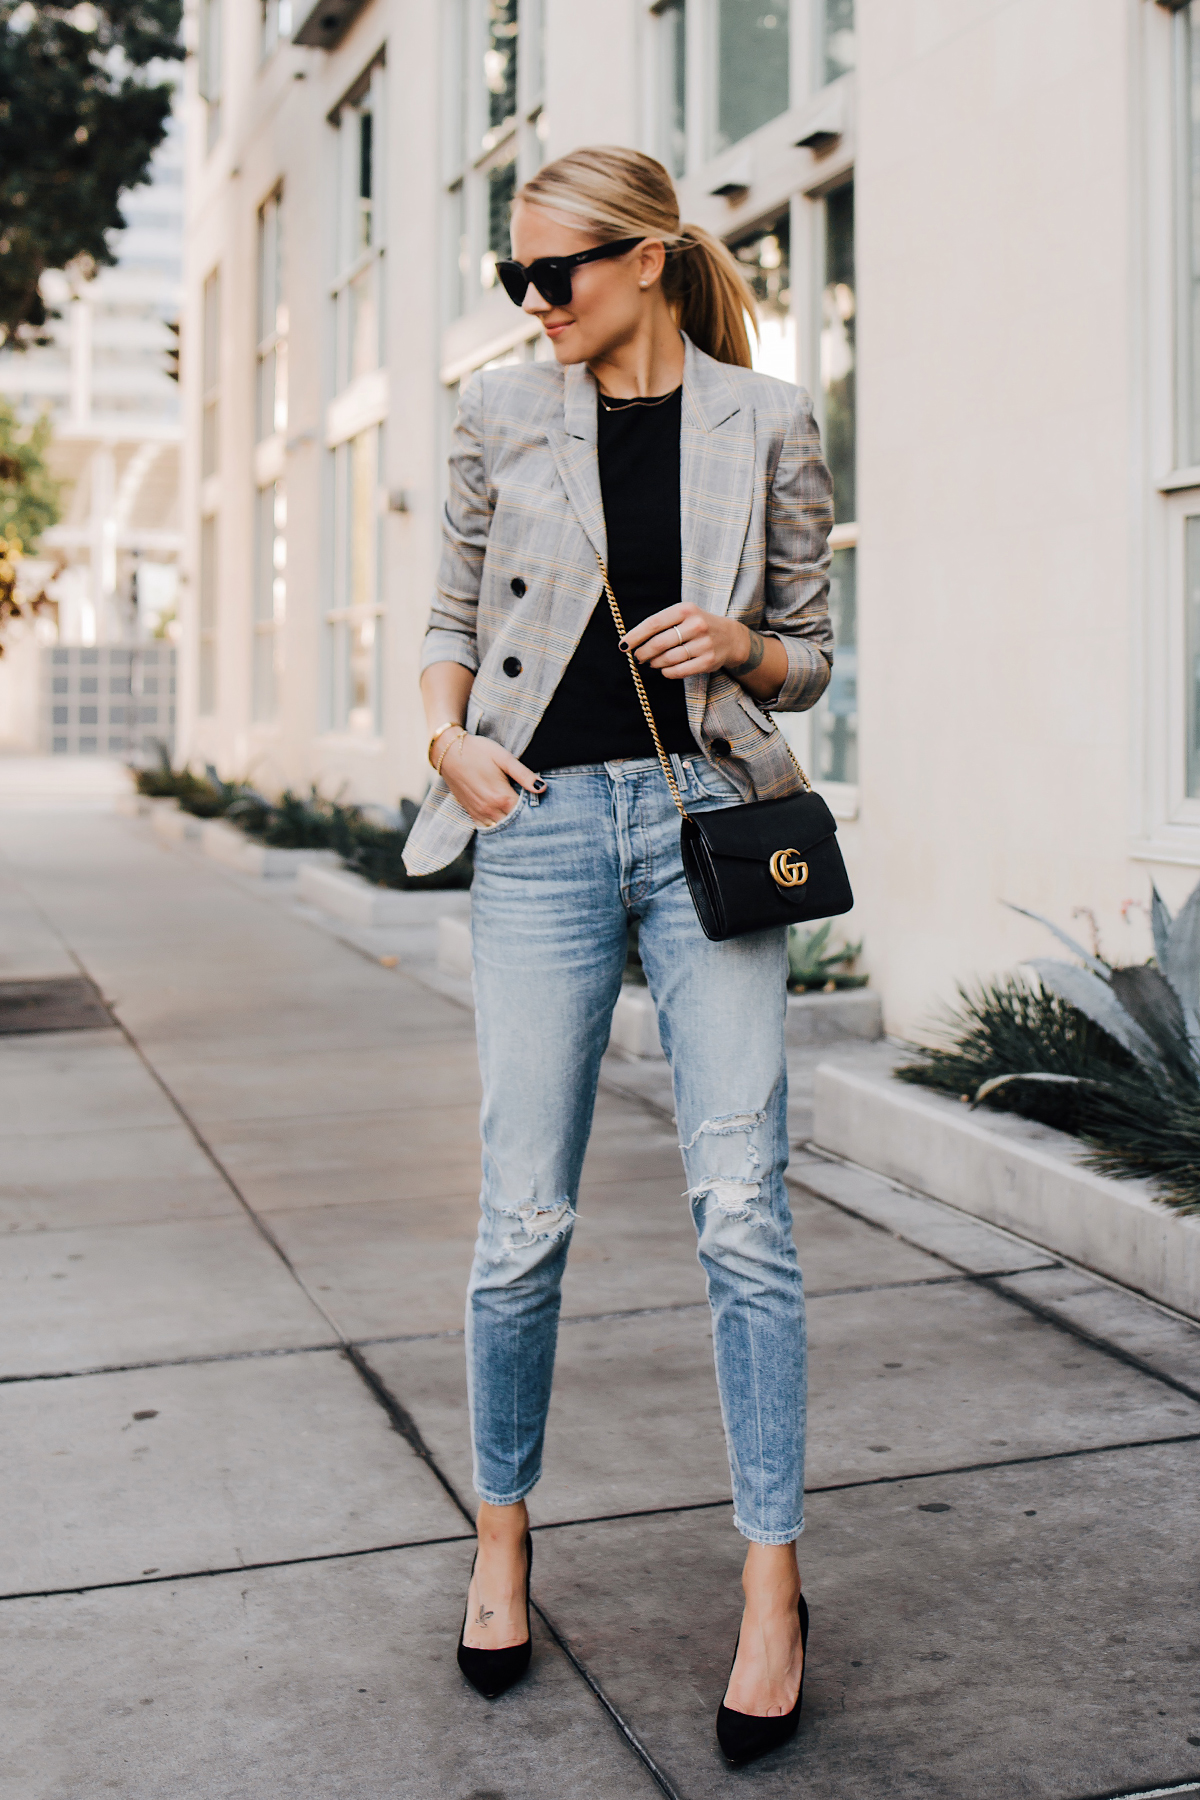 Fashion Jackson Plaid Blazer Mother Ripped Denim Jeans Black Pumps Gucci Black Handbag Fashion Jackson San Diego Fashion Blogger Street Style